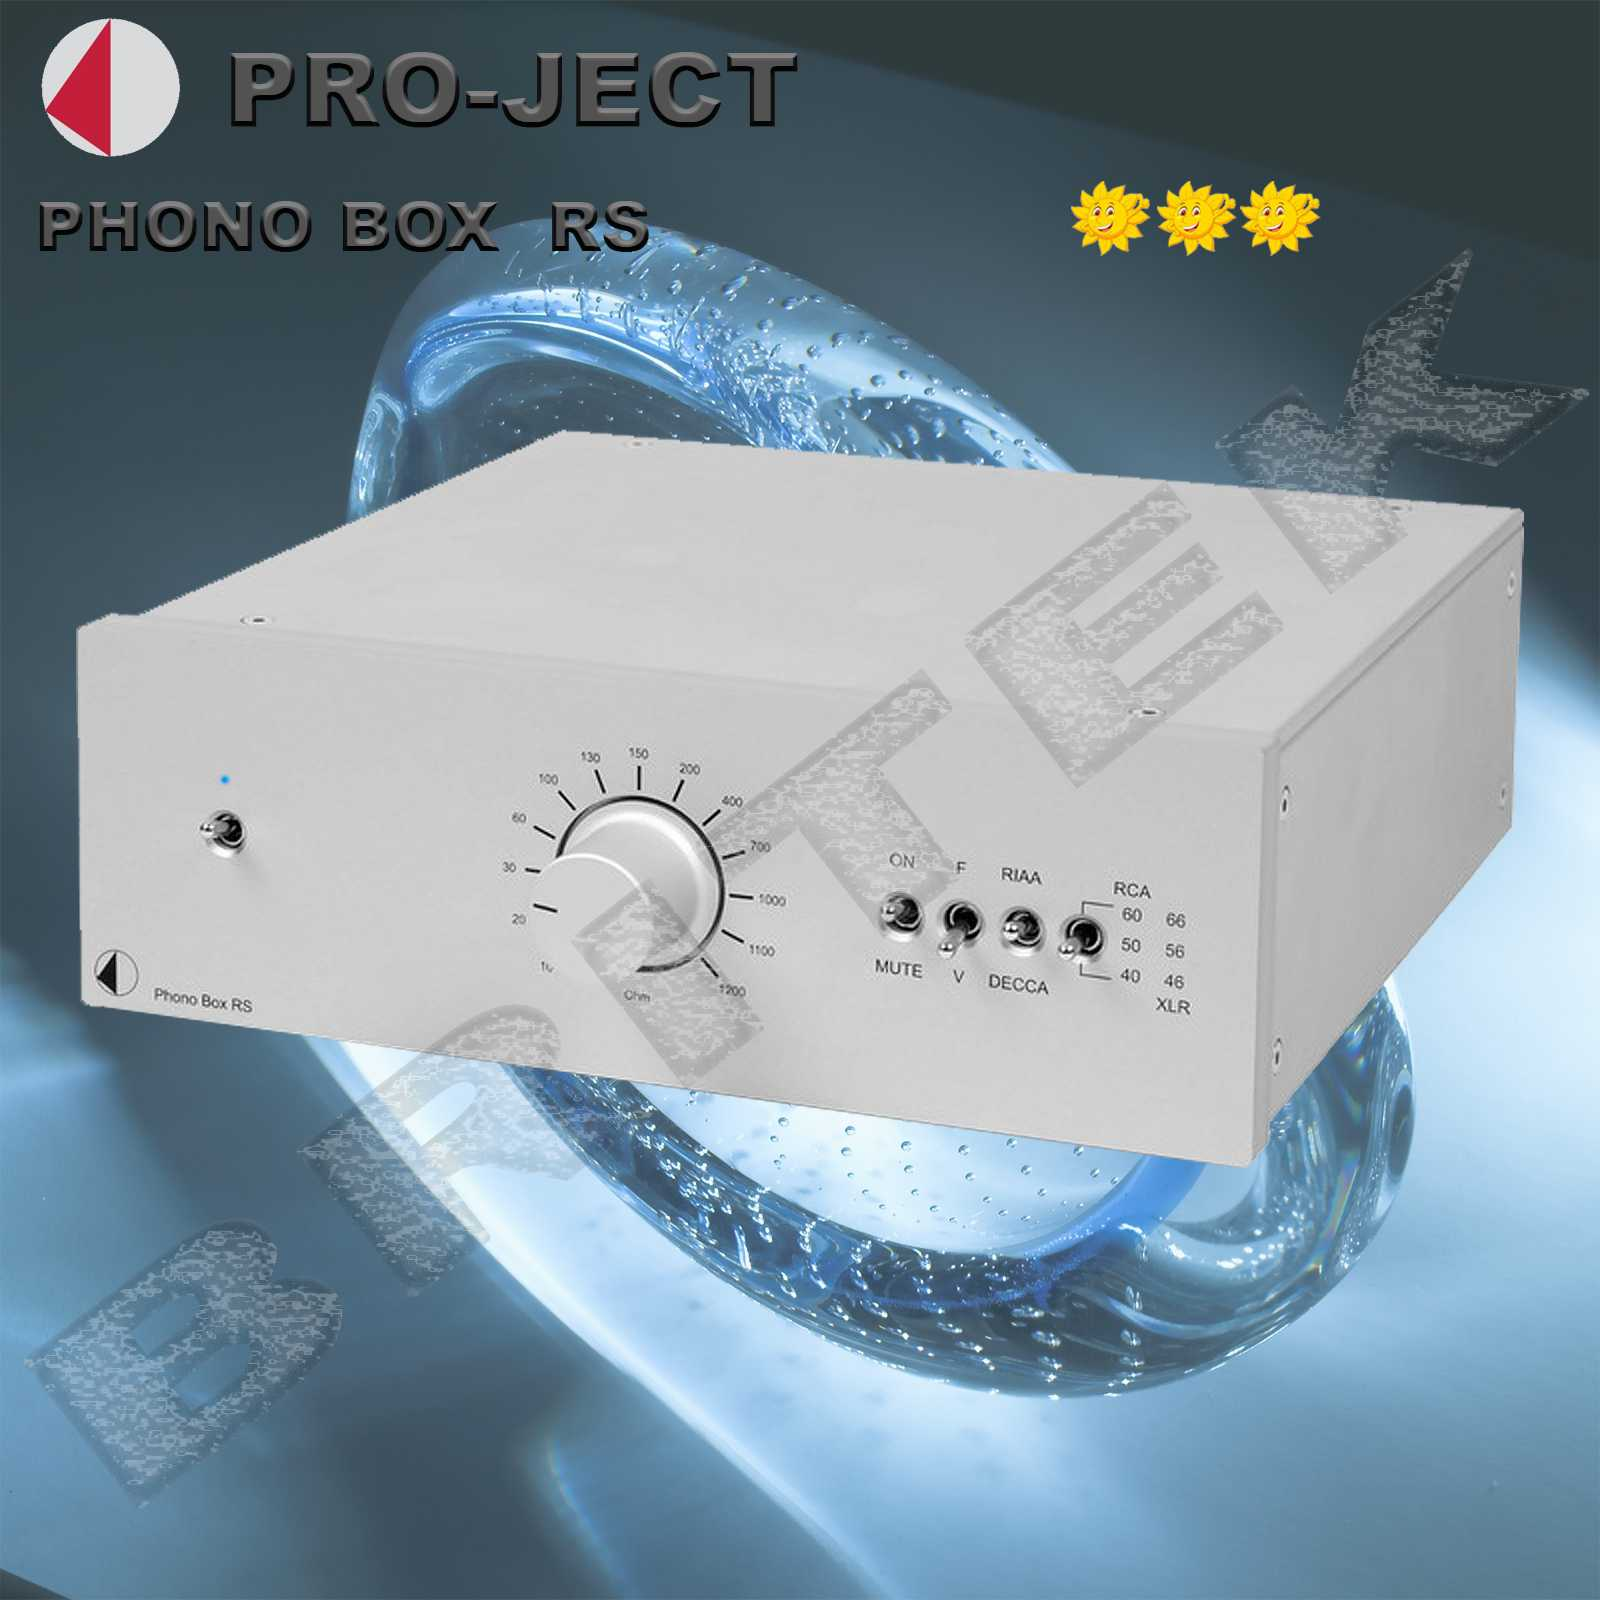 PRO-JECT PHONO BOX-RS